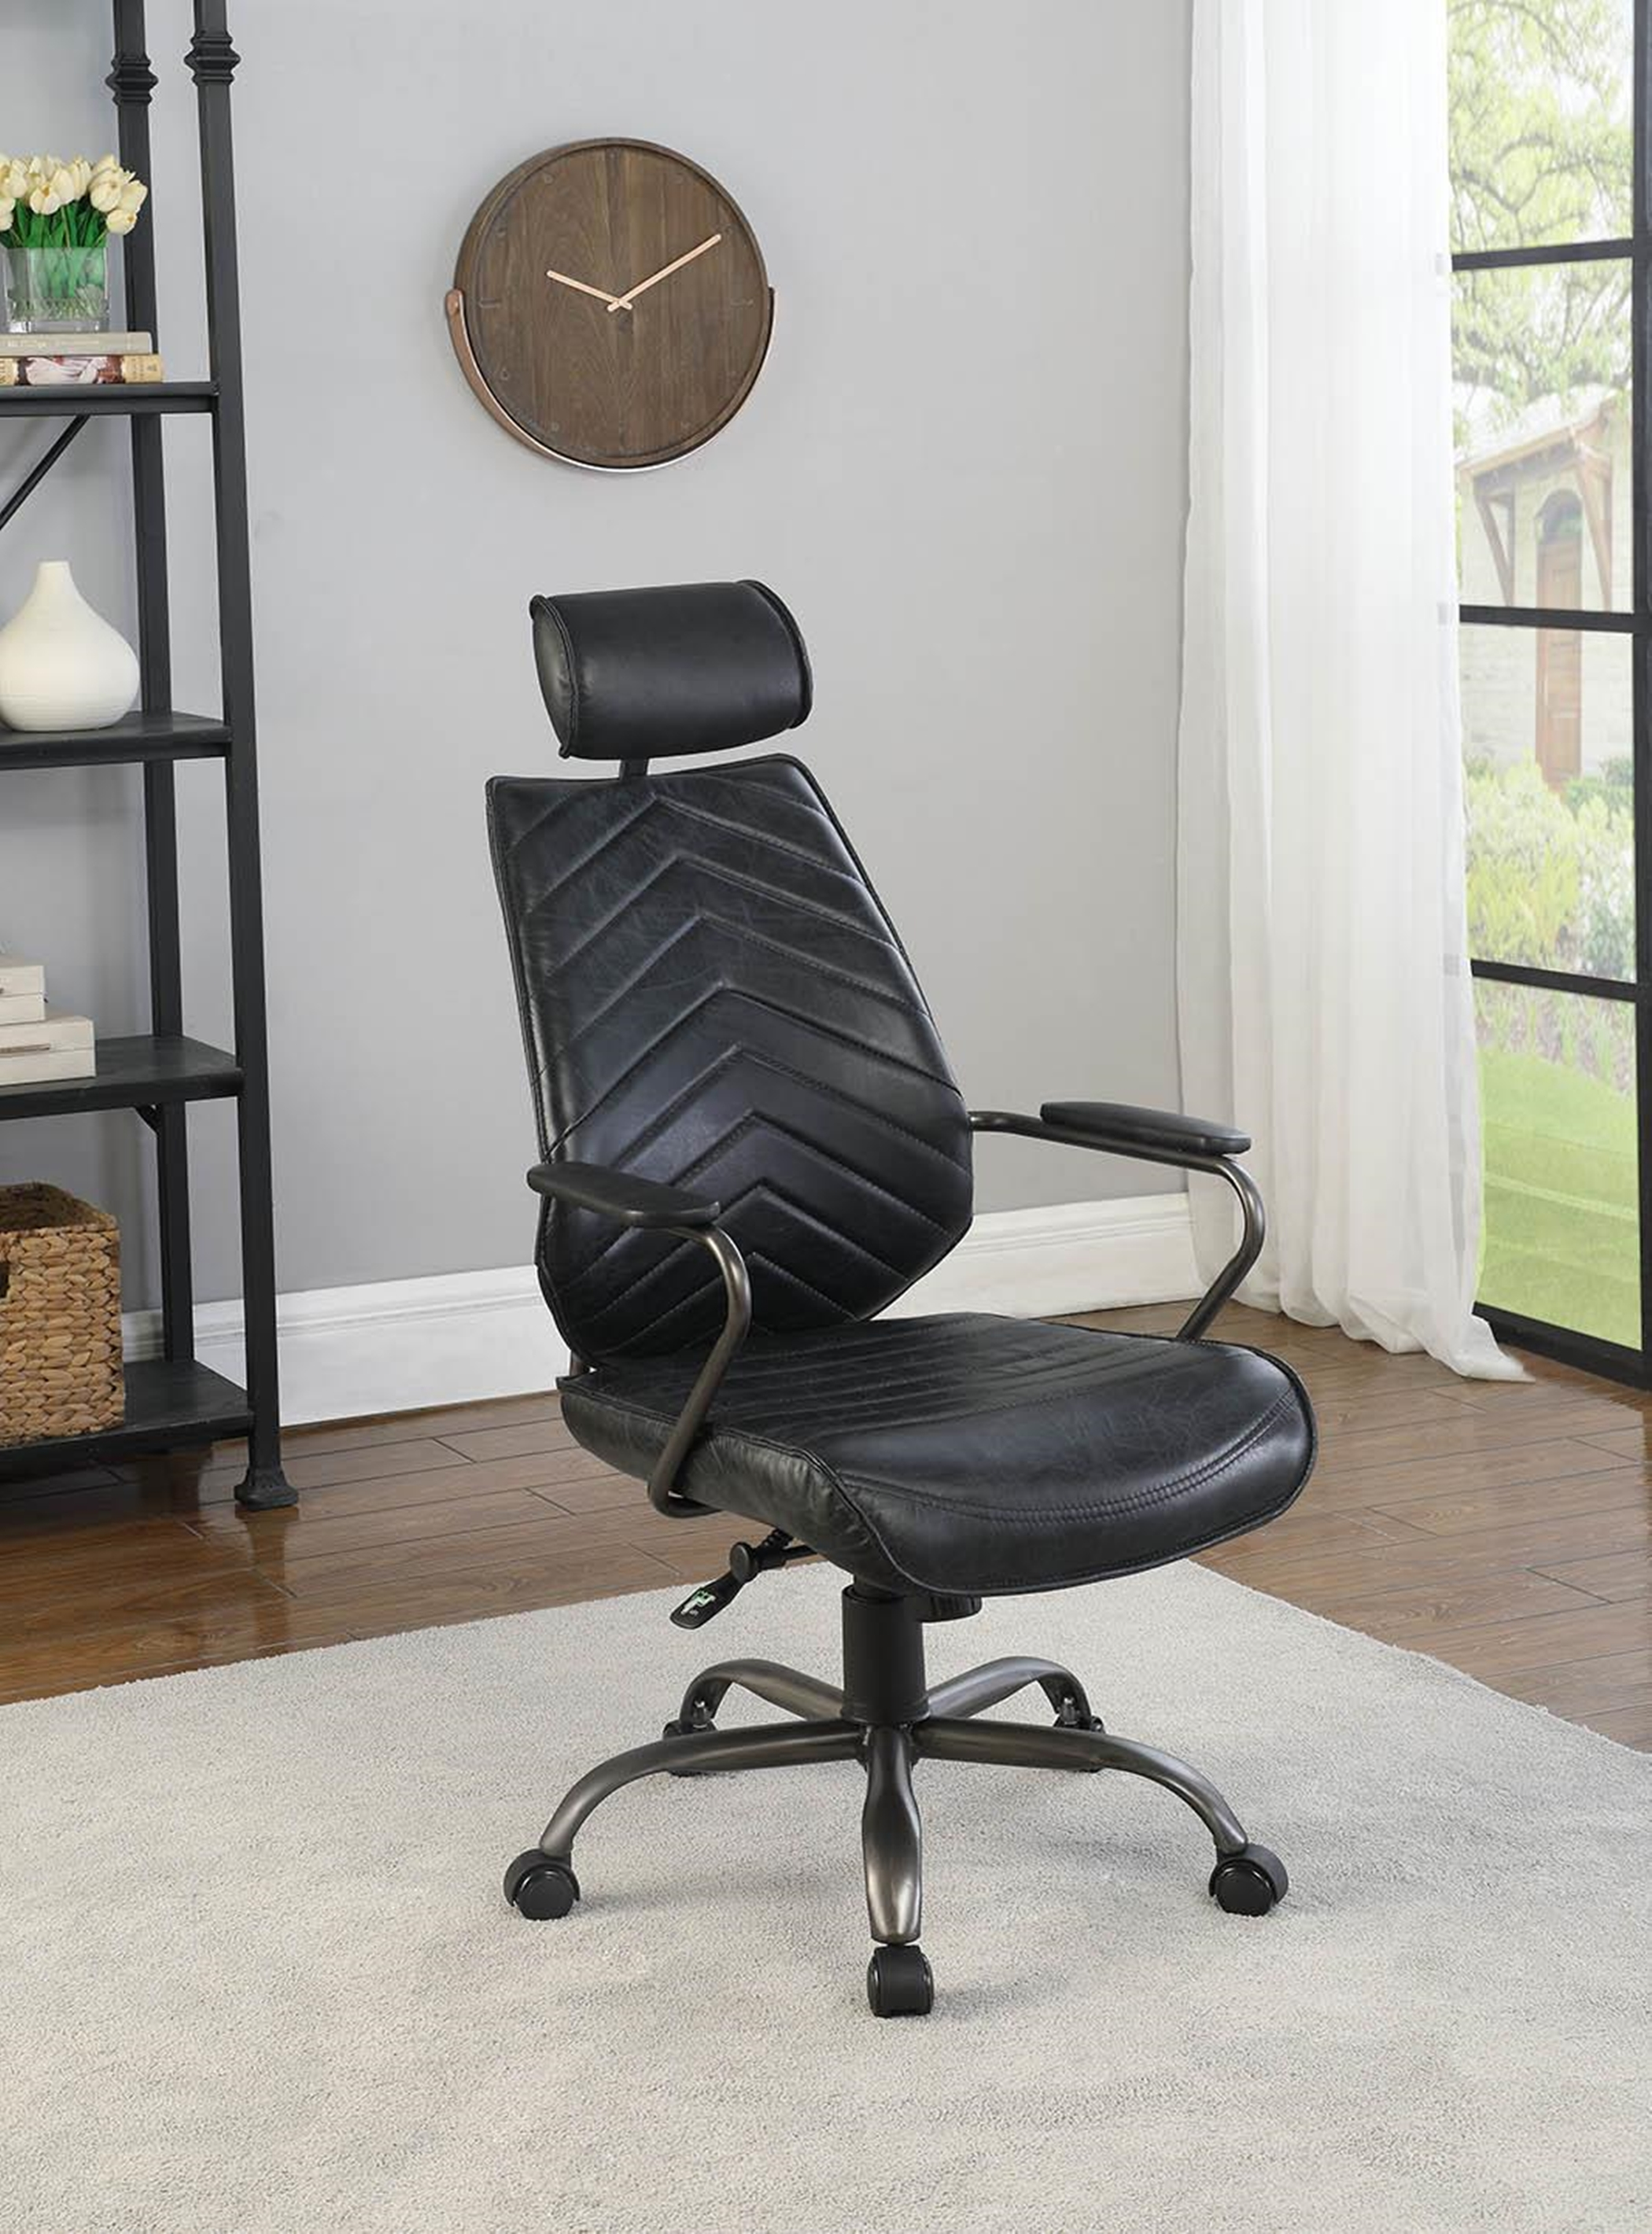 802181 High Back Office Chair